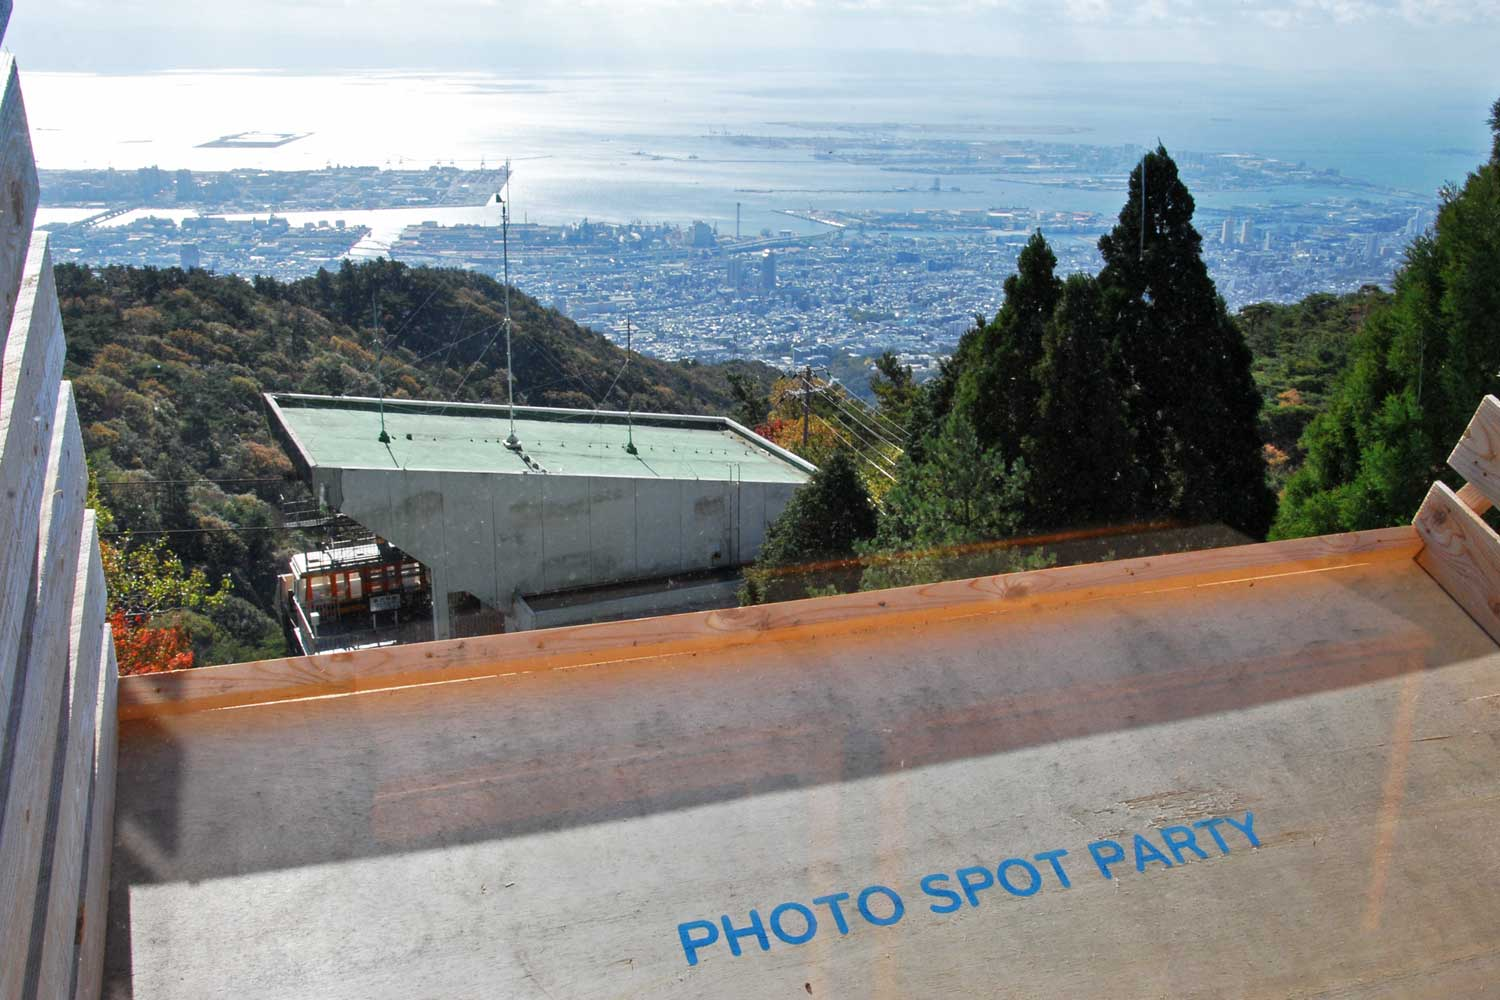 kobe-2014-mont-rokko-cable-car-photo-spot